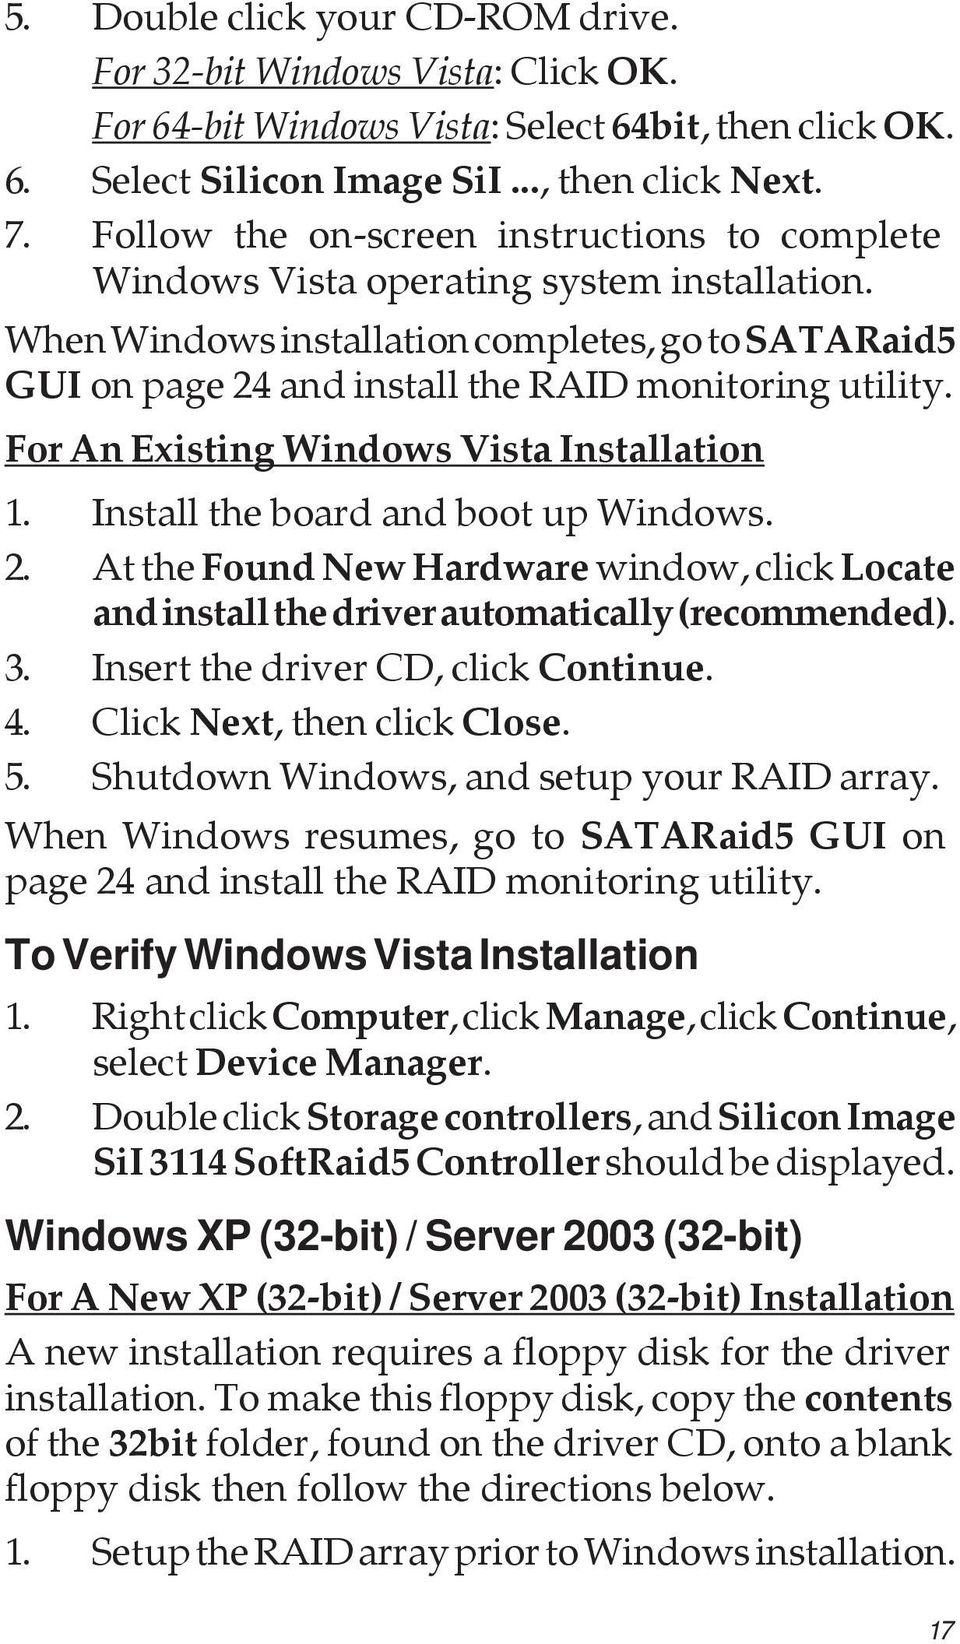 For An Existing Windows Vista Installation 1. Install the board and boot up Windows. 2. At the Found New Hardware window, click Locate and install the driver automatically (recommended). 3.